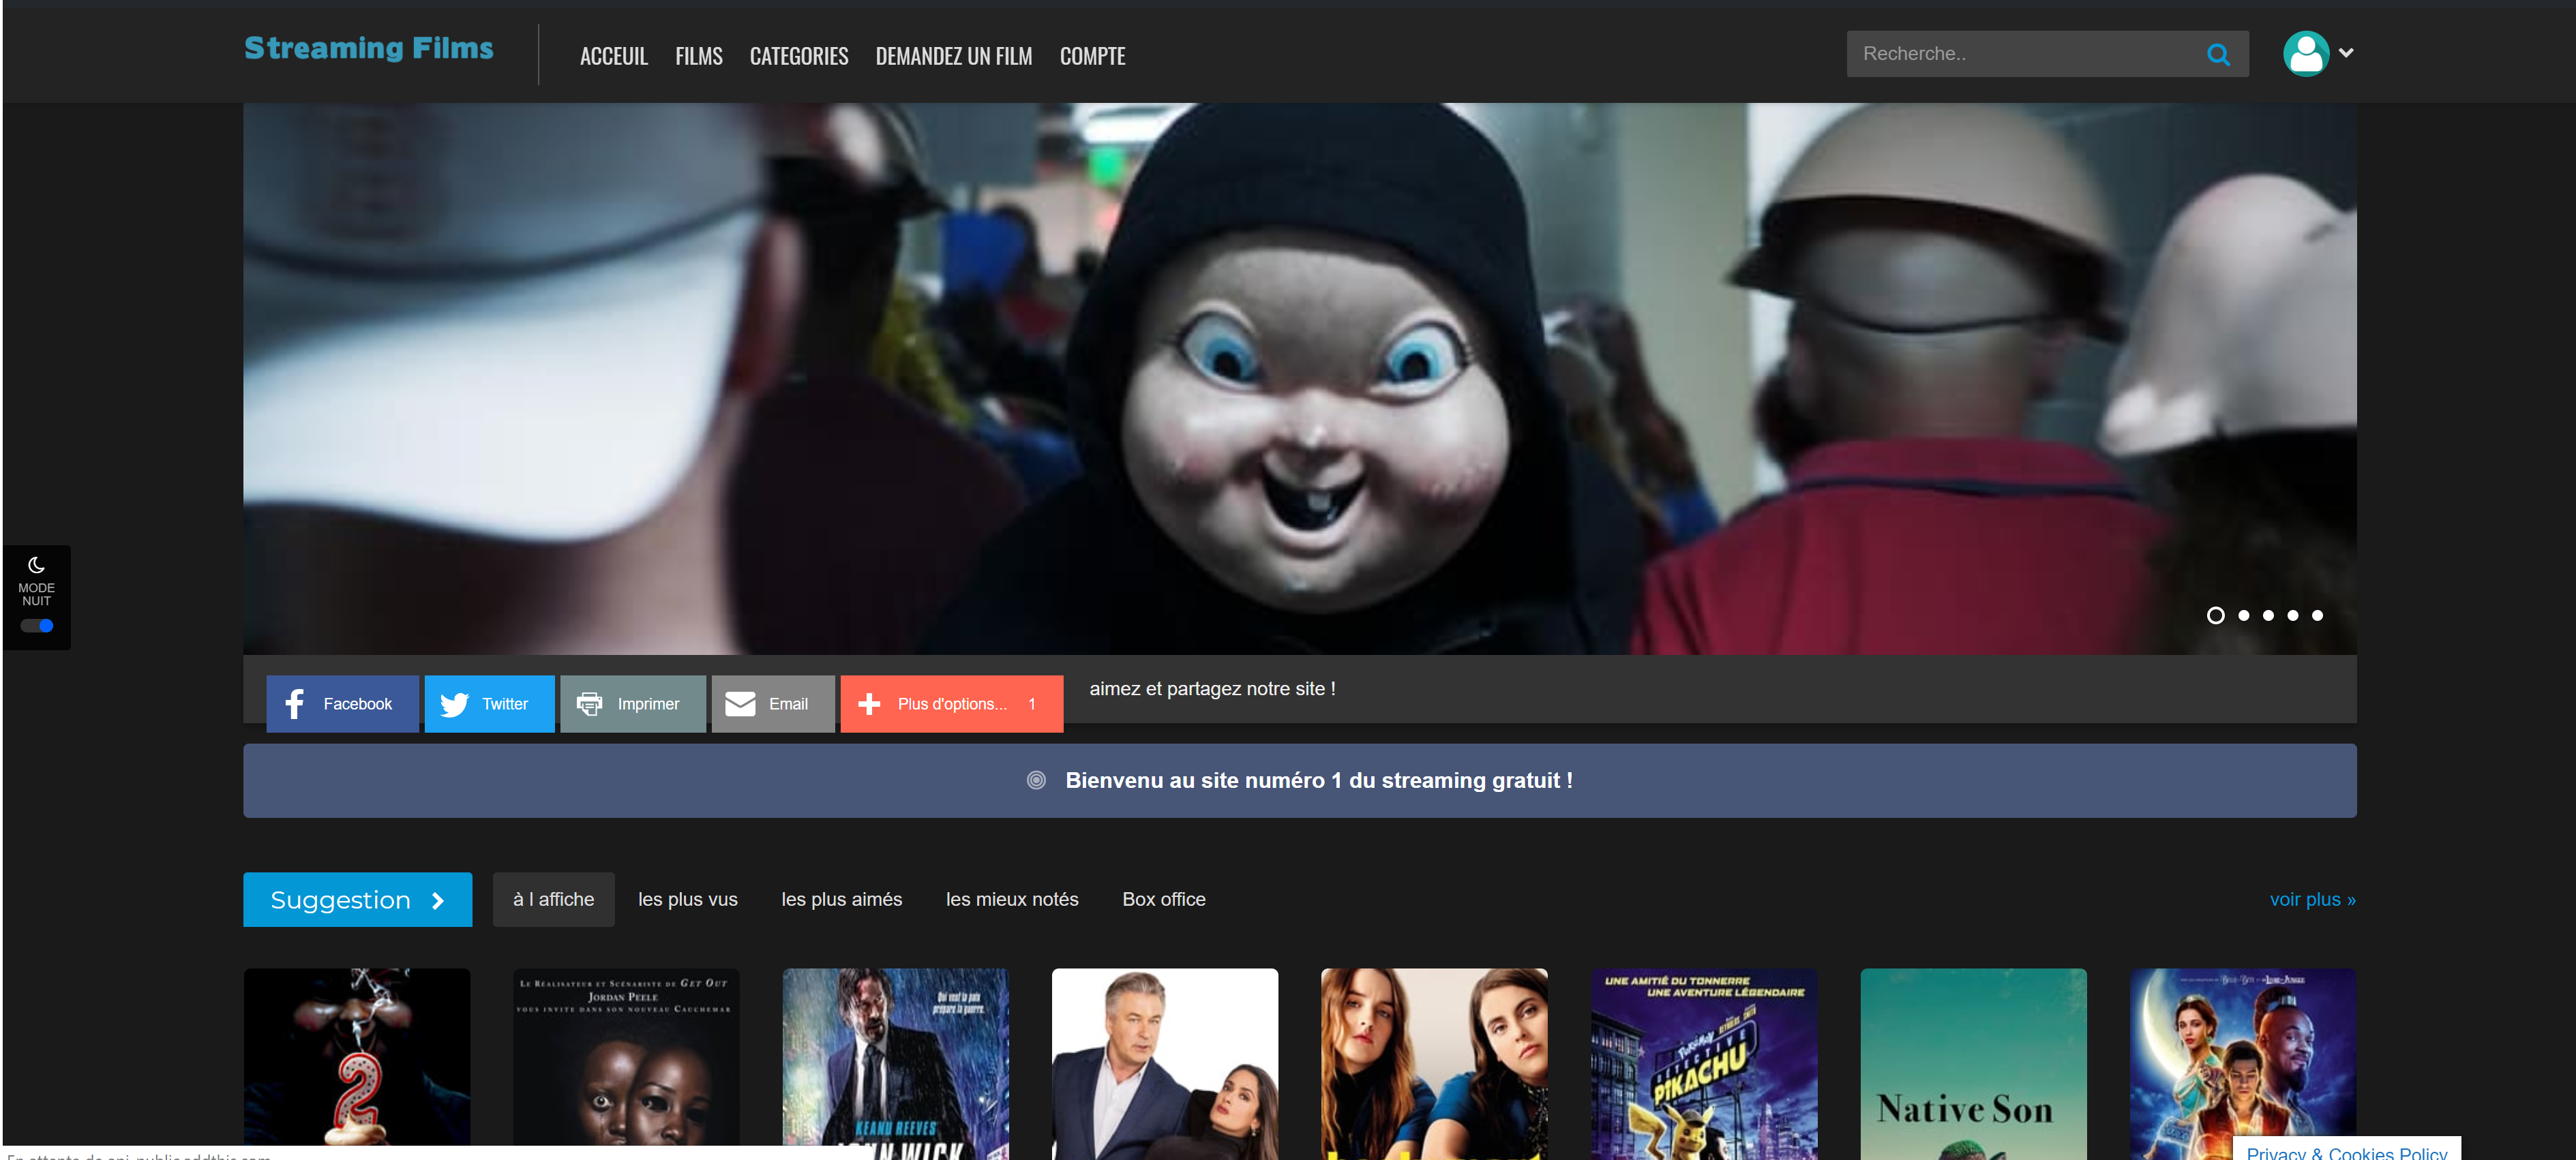 123movie clone automatic movies website+ proven traffic method to get 5000-10000 per month